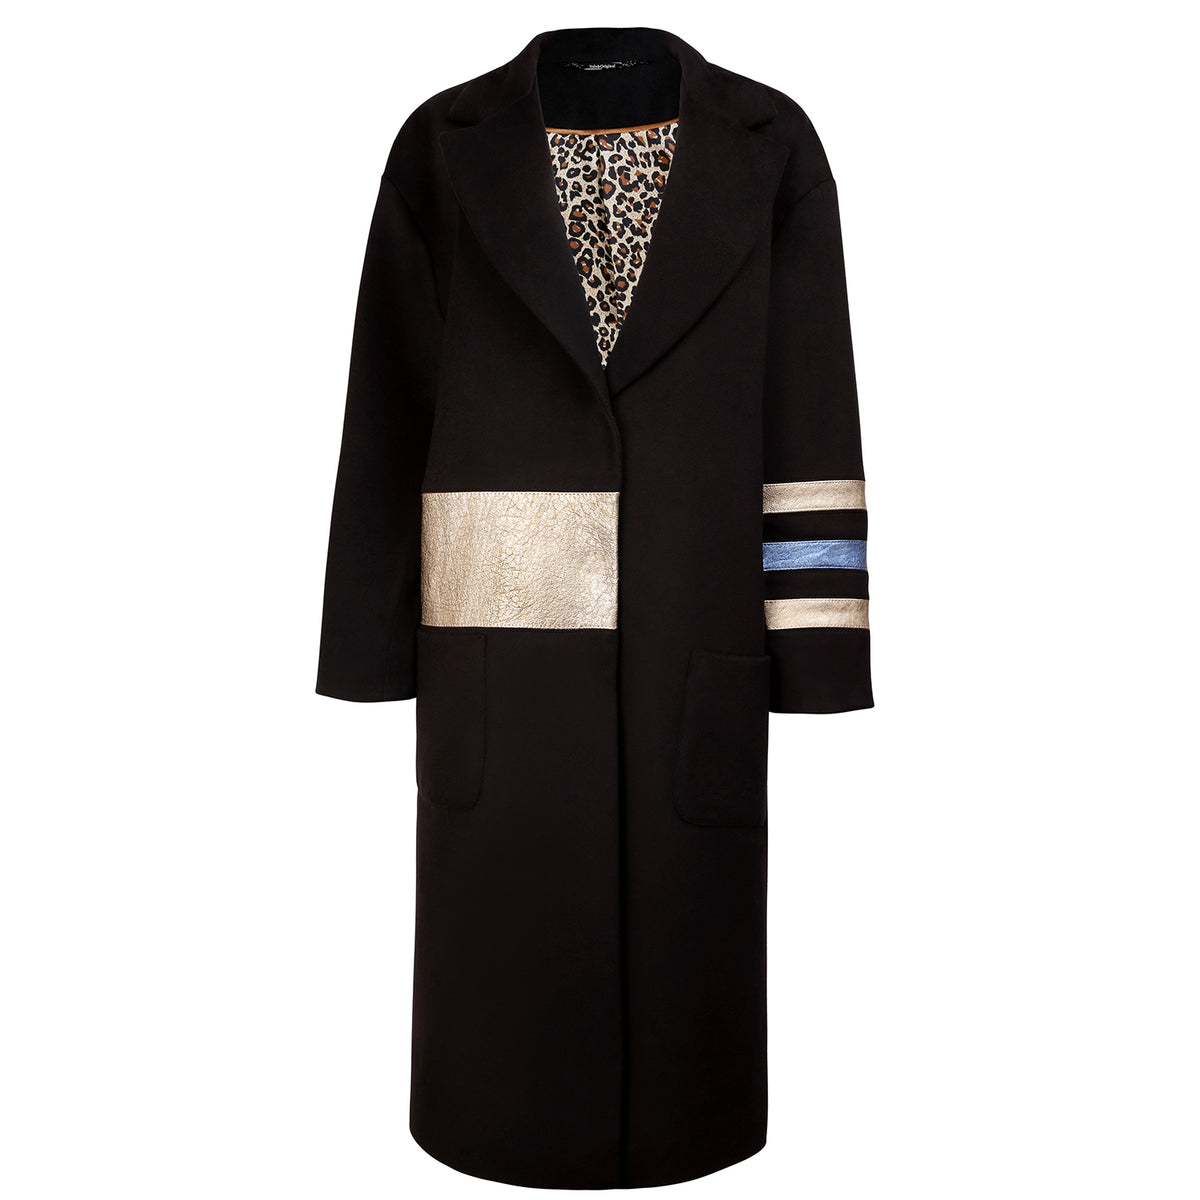 'Gold Dust' Cashmere Oversized Coat - VOLS & ORIGINAL